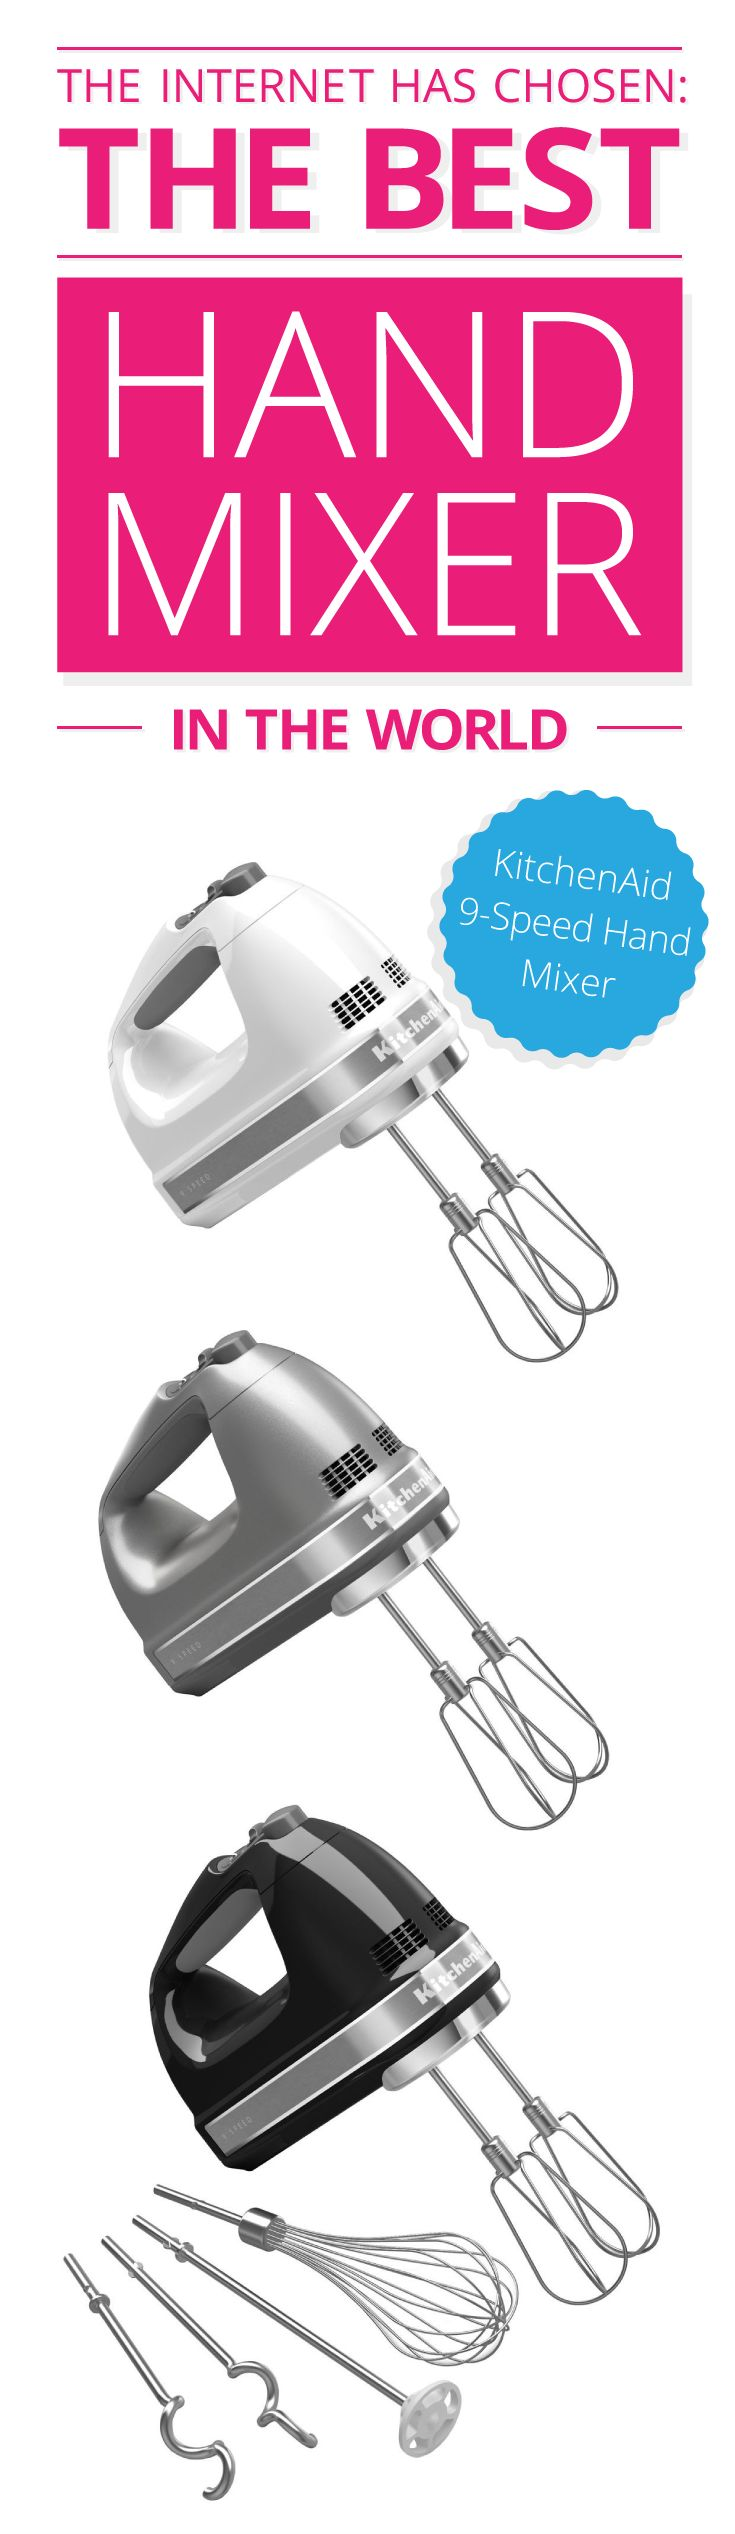 Whether you are whipping up some egg whites or need to knead dough for homemade pizza, there is no debating that a hand mixer is one of a cook's best helpers! And this mix, is awesome! http://www.comparaboo.com/hand-mixers?origin=googled2